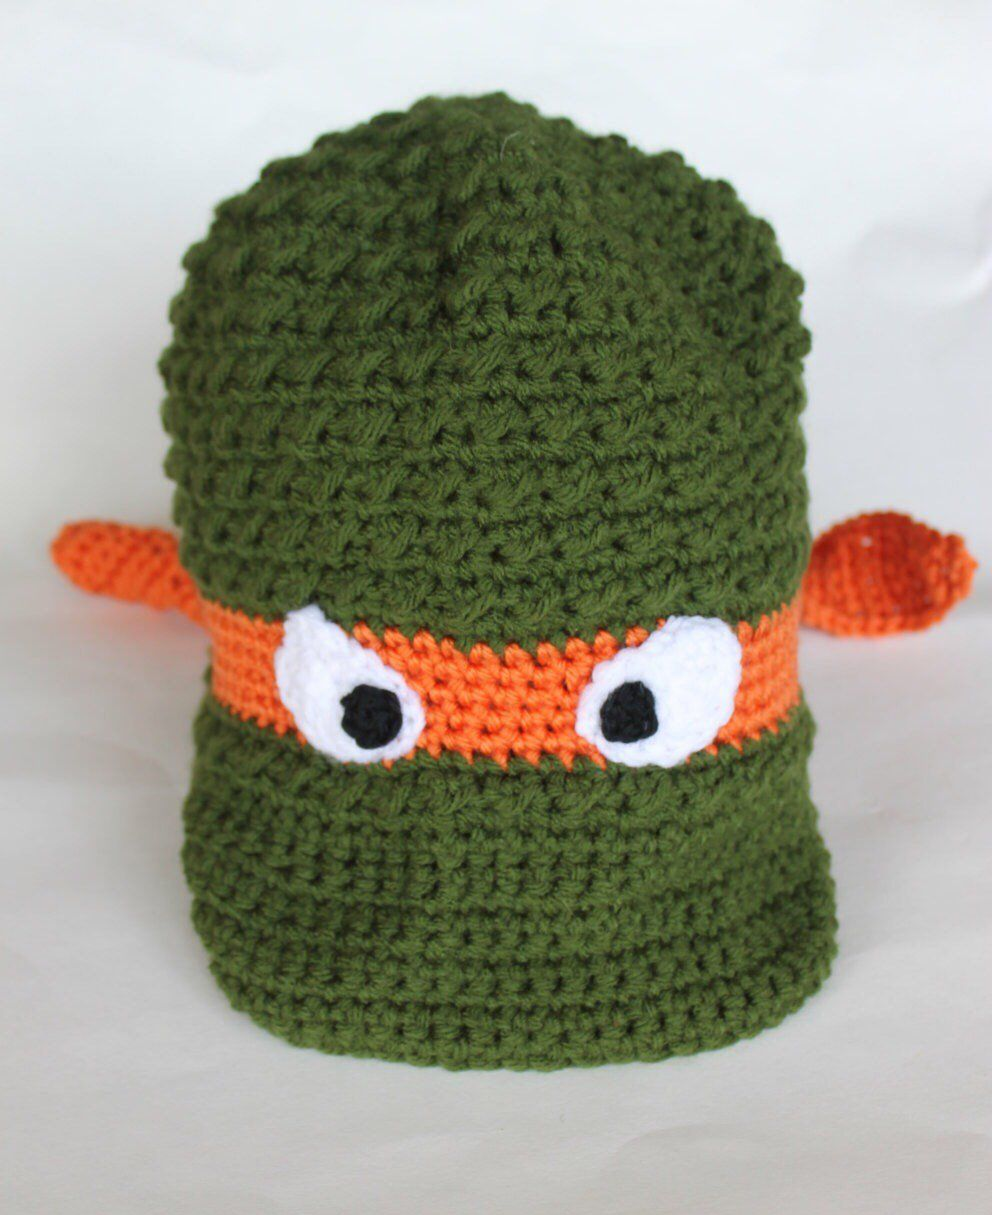 bcc20f23715 Crochet Ninja Turtle Newsboy Hat anyone  I make all 4 TMNT characters in  all sizes. Also comes in a beanie style.